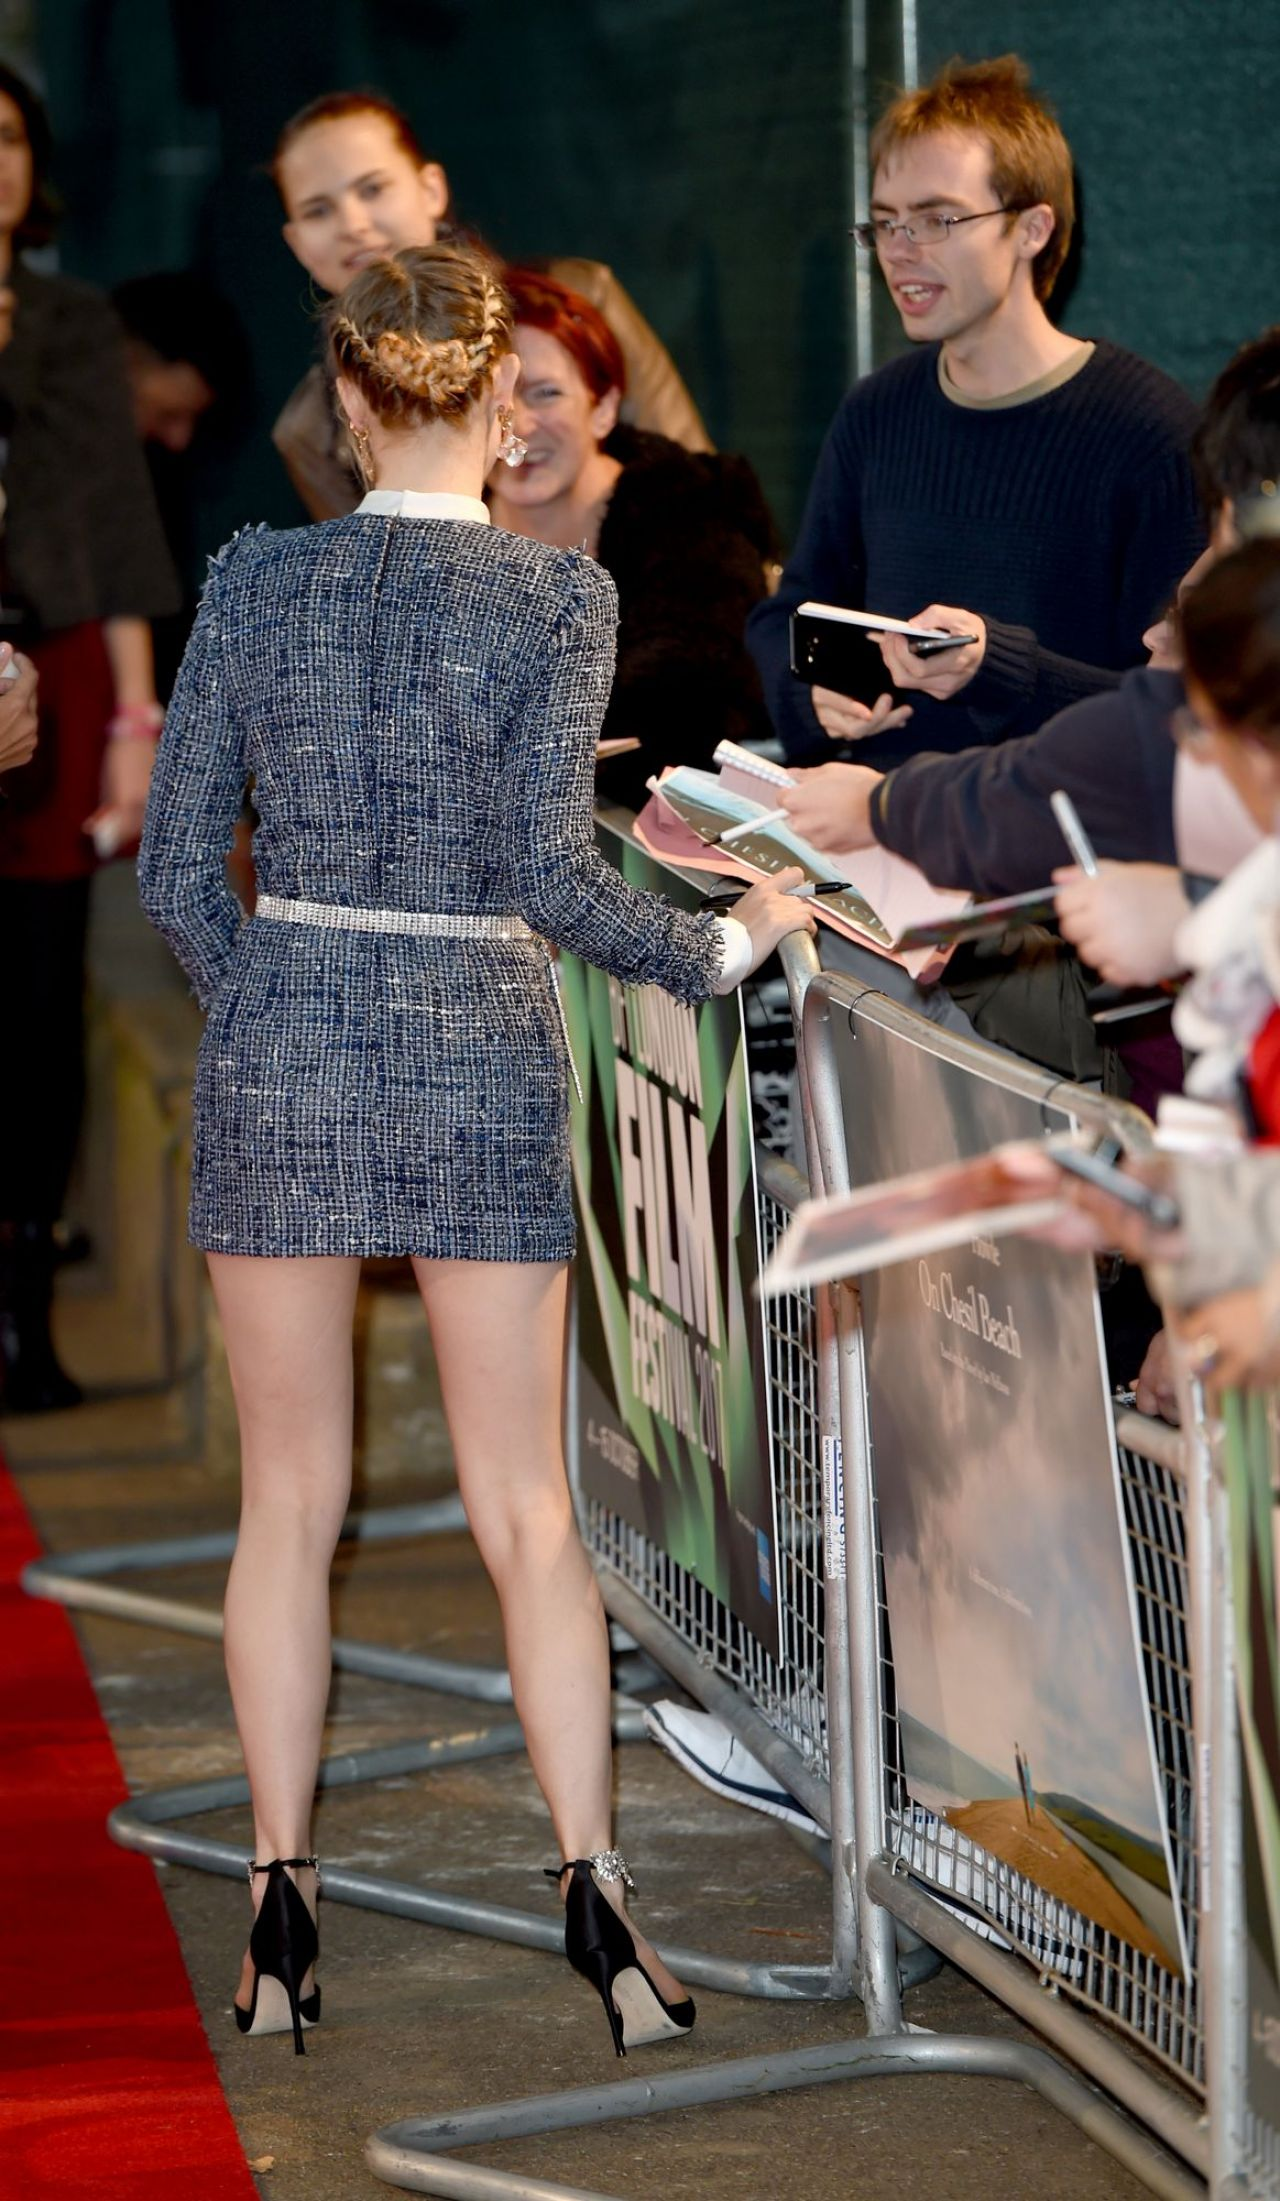 Saoirse Ronan Quot On Chesil Beach Quot Premiere At Bfi London